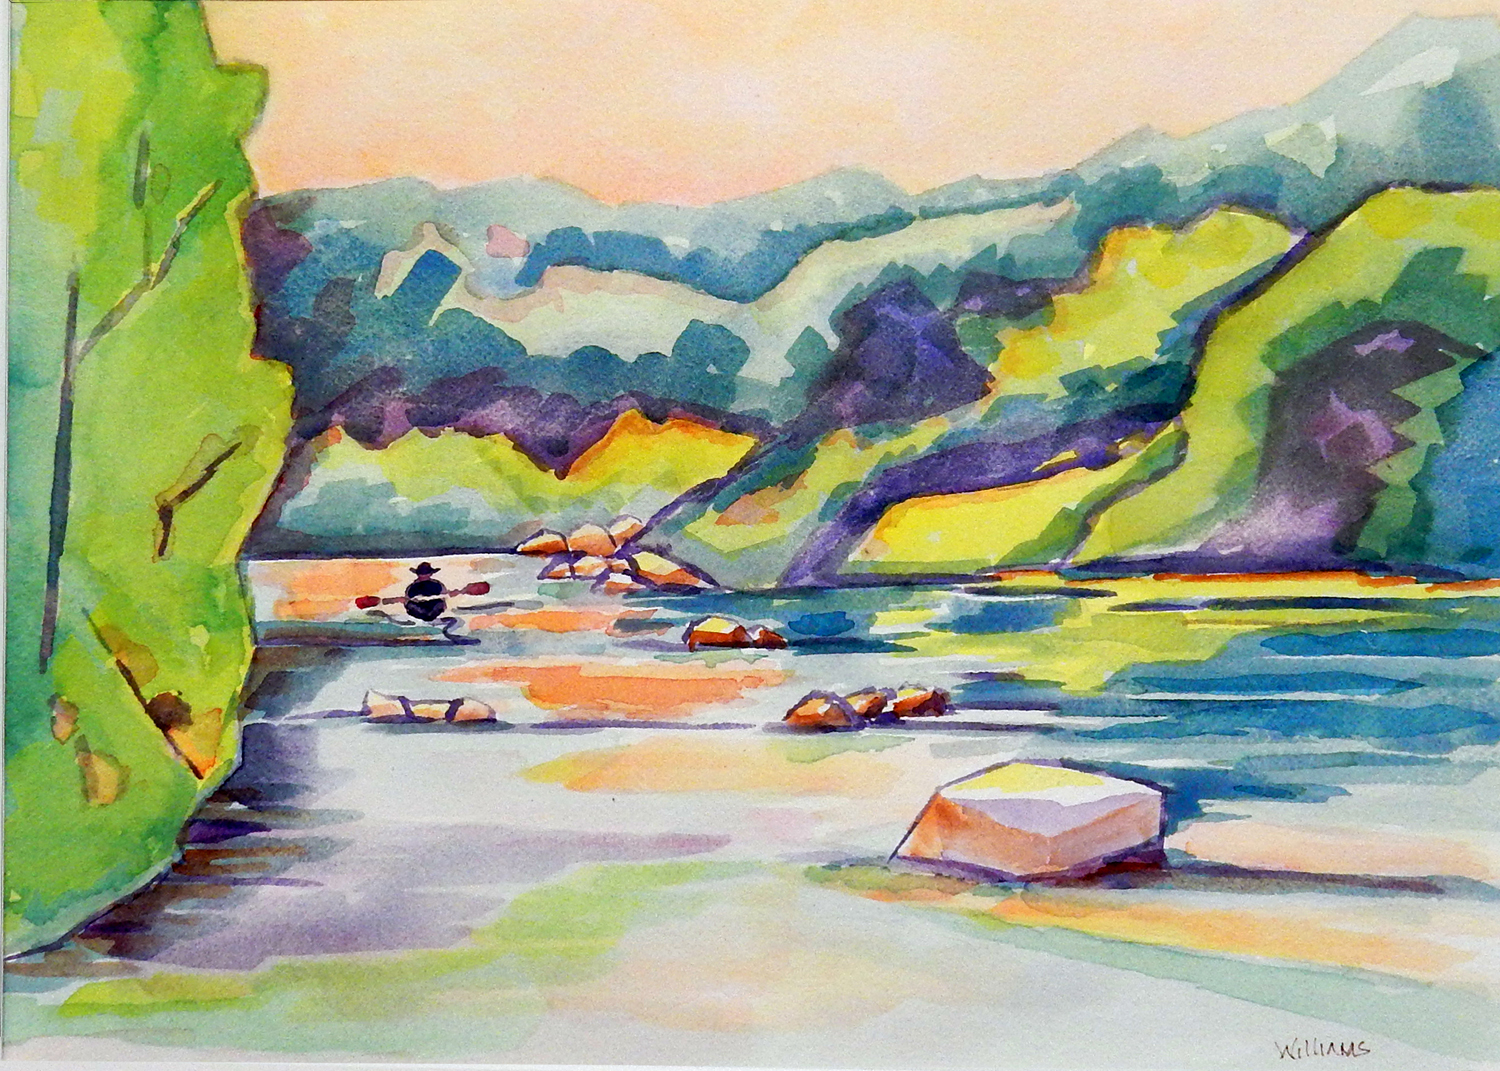 A Paddler's Bliss, Nancy Williams